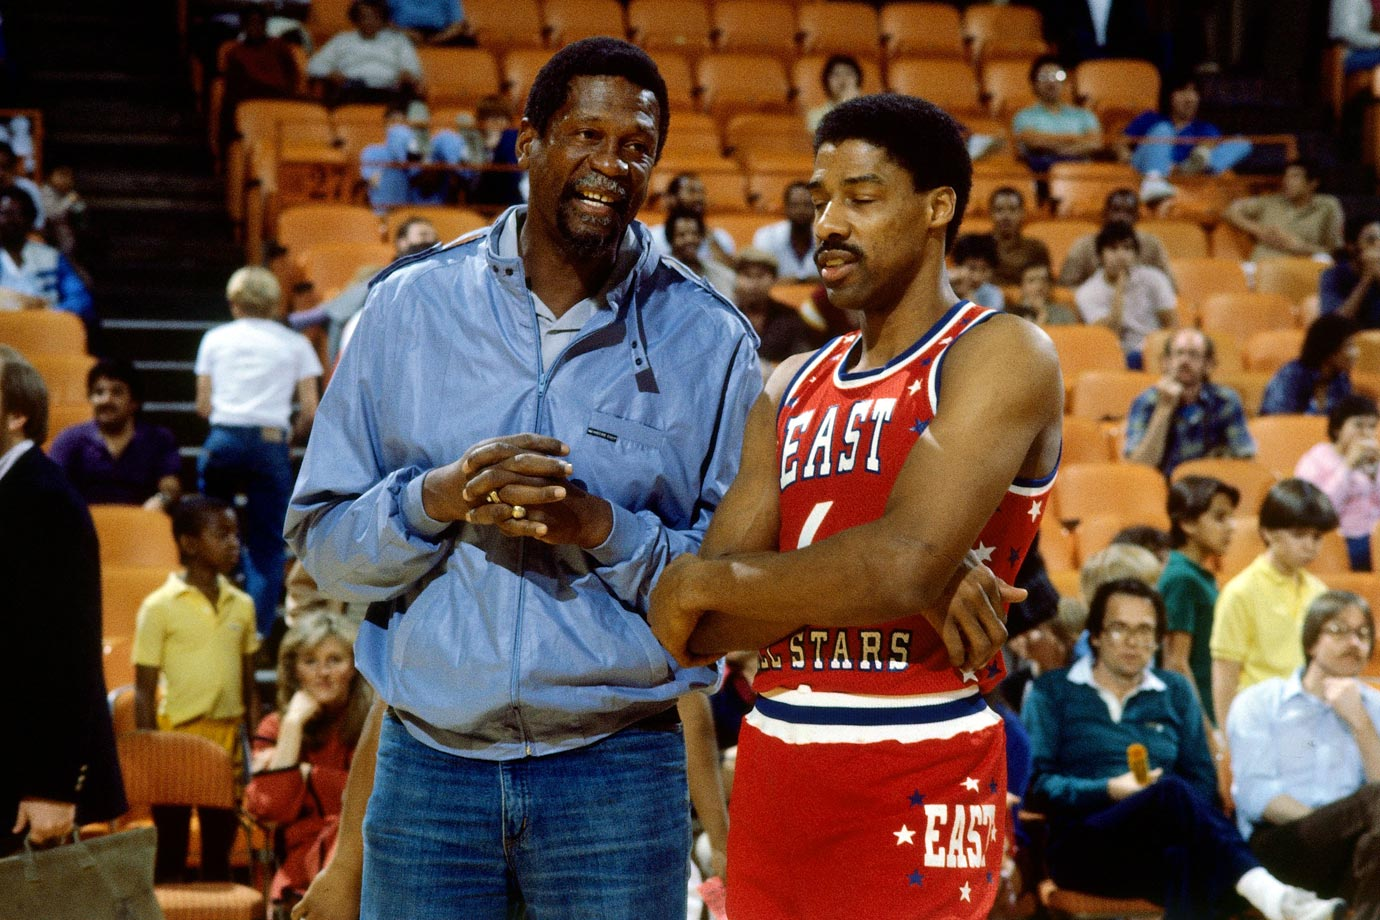 Bill Russell chats with Julius Erving before the All-Star game at the Forum in Inglewood, Calif. Dr. J won the game's MVP award after leading the East to a 132-123 win.